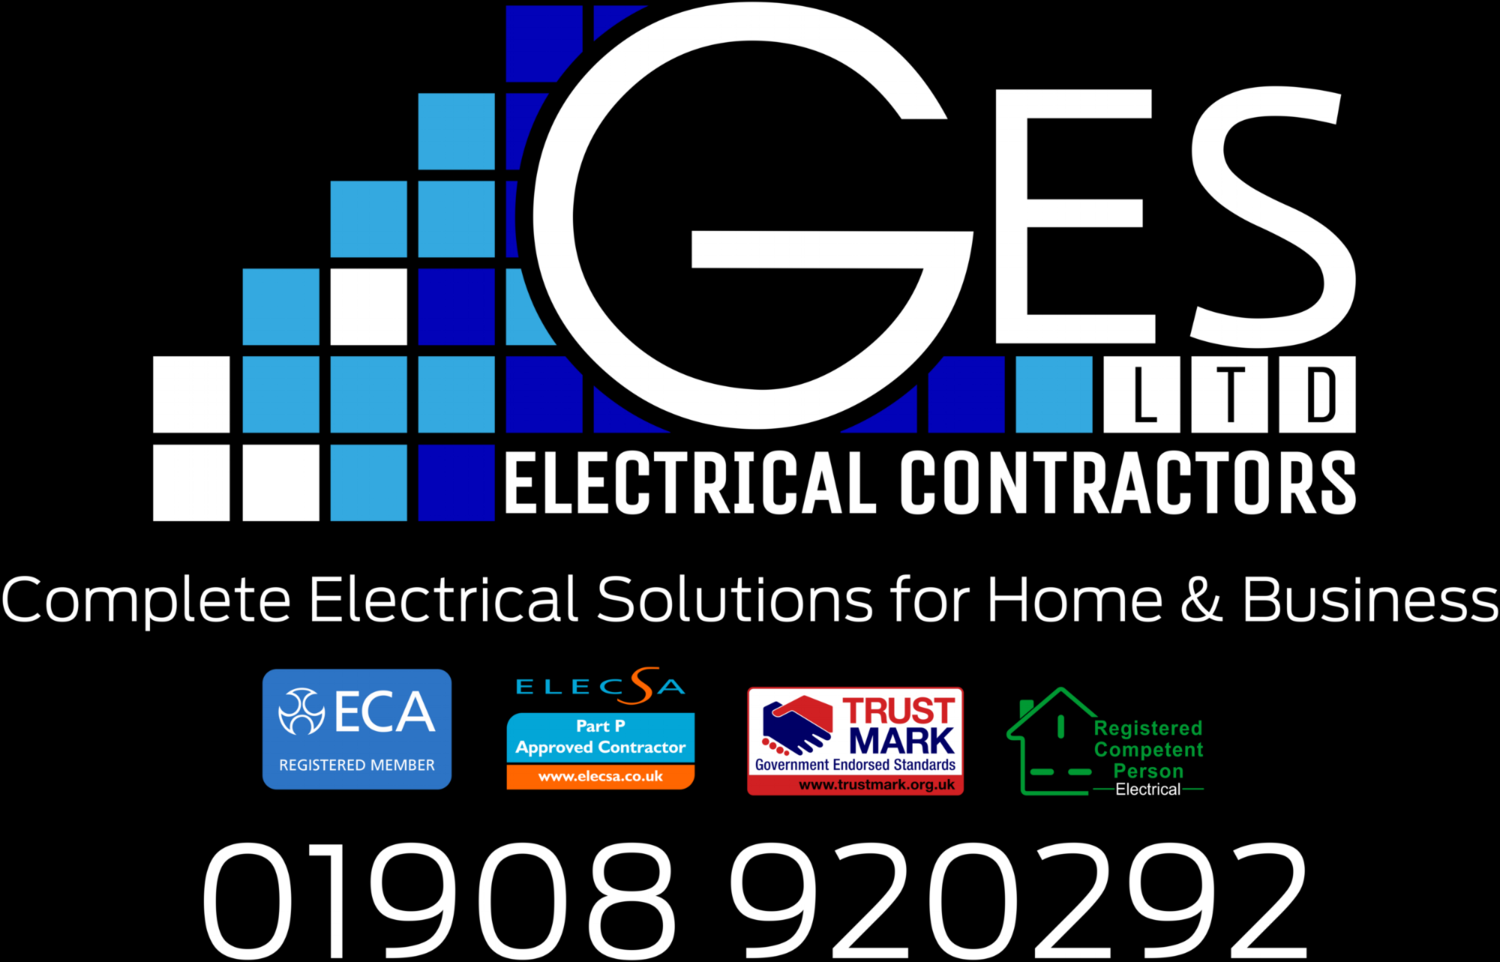 Goodship Electrical Solutions